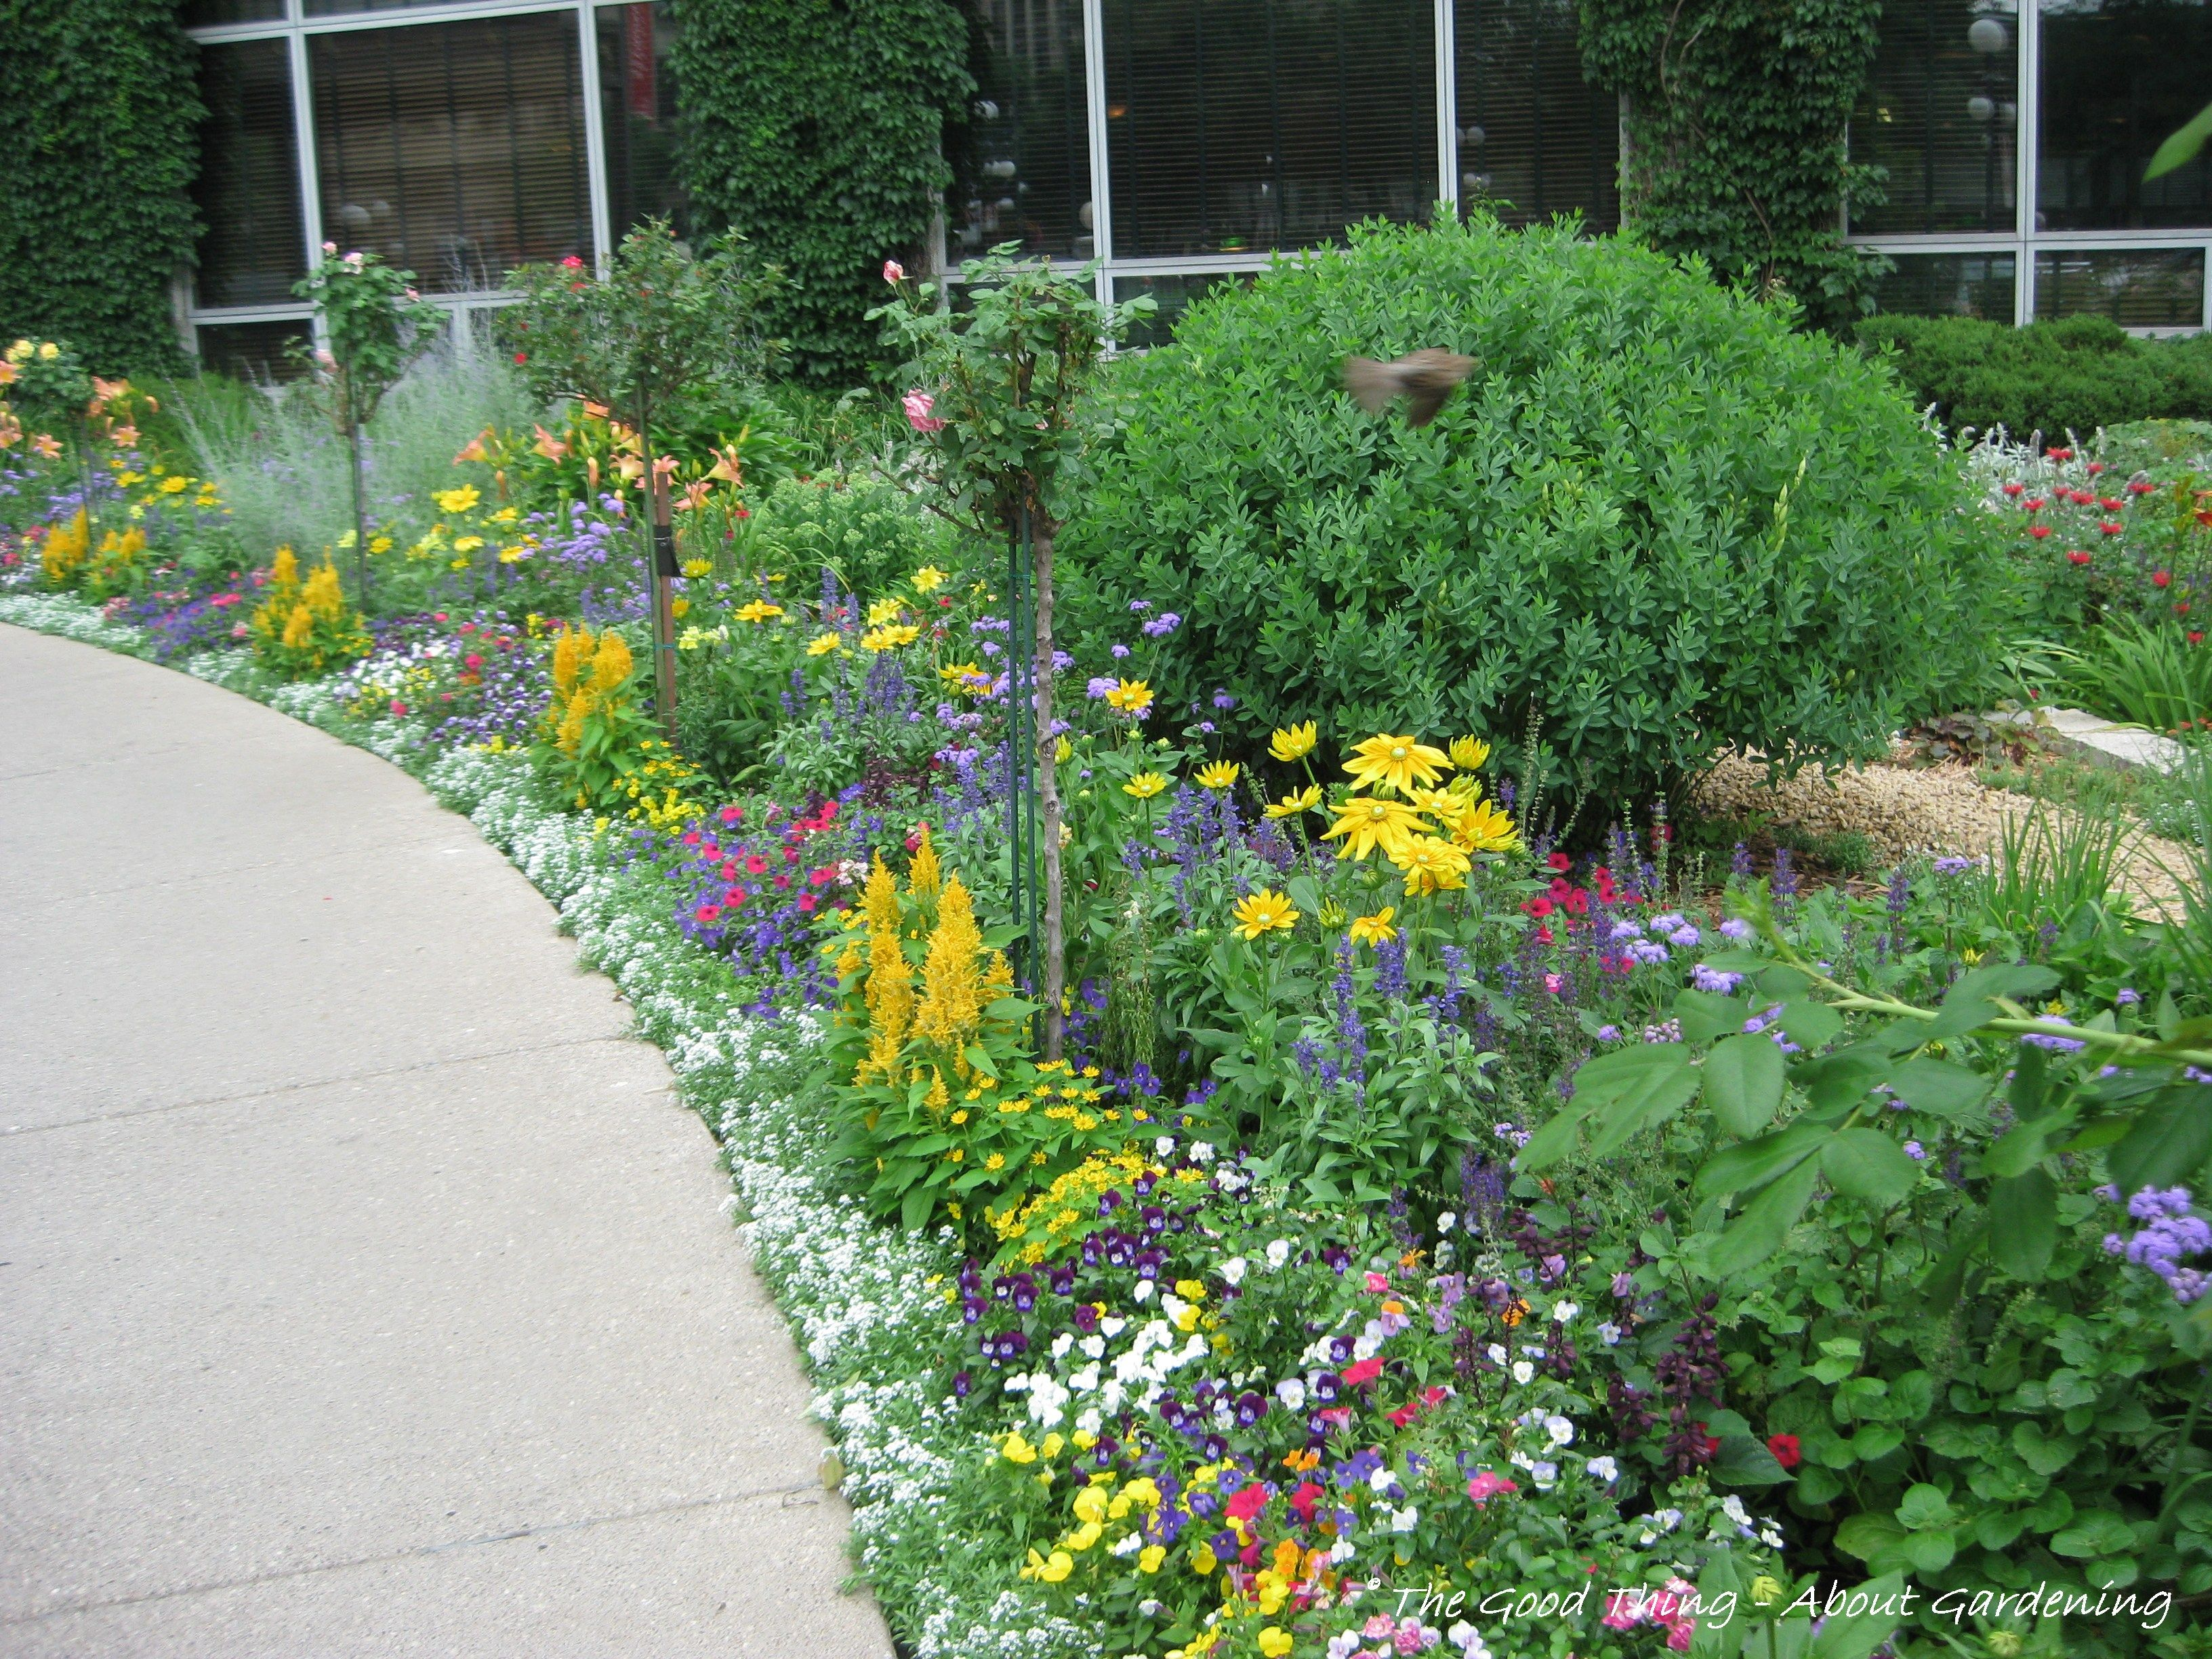 garden edging next to sidewalk | flower gardens include annuals to